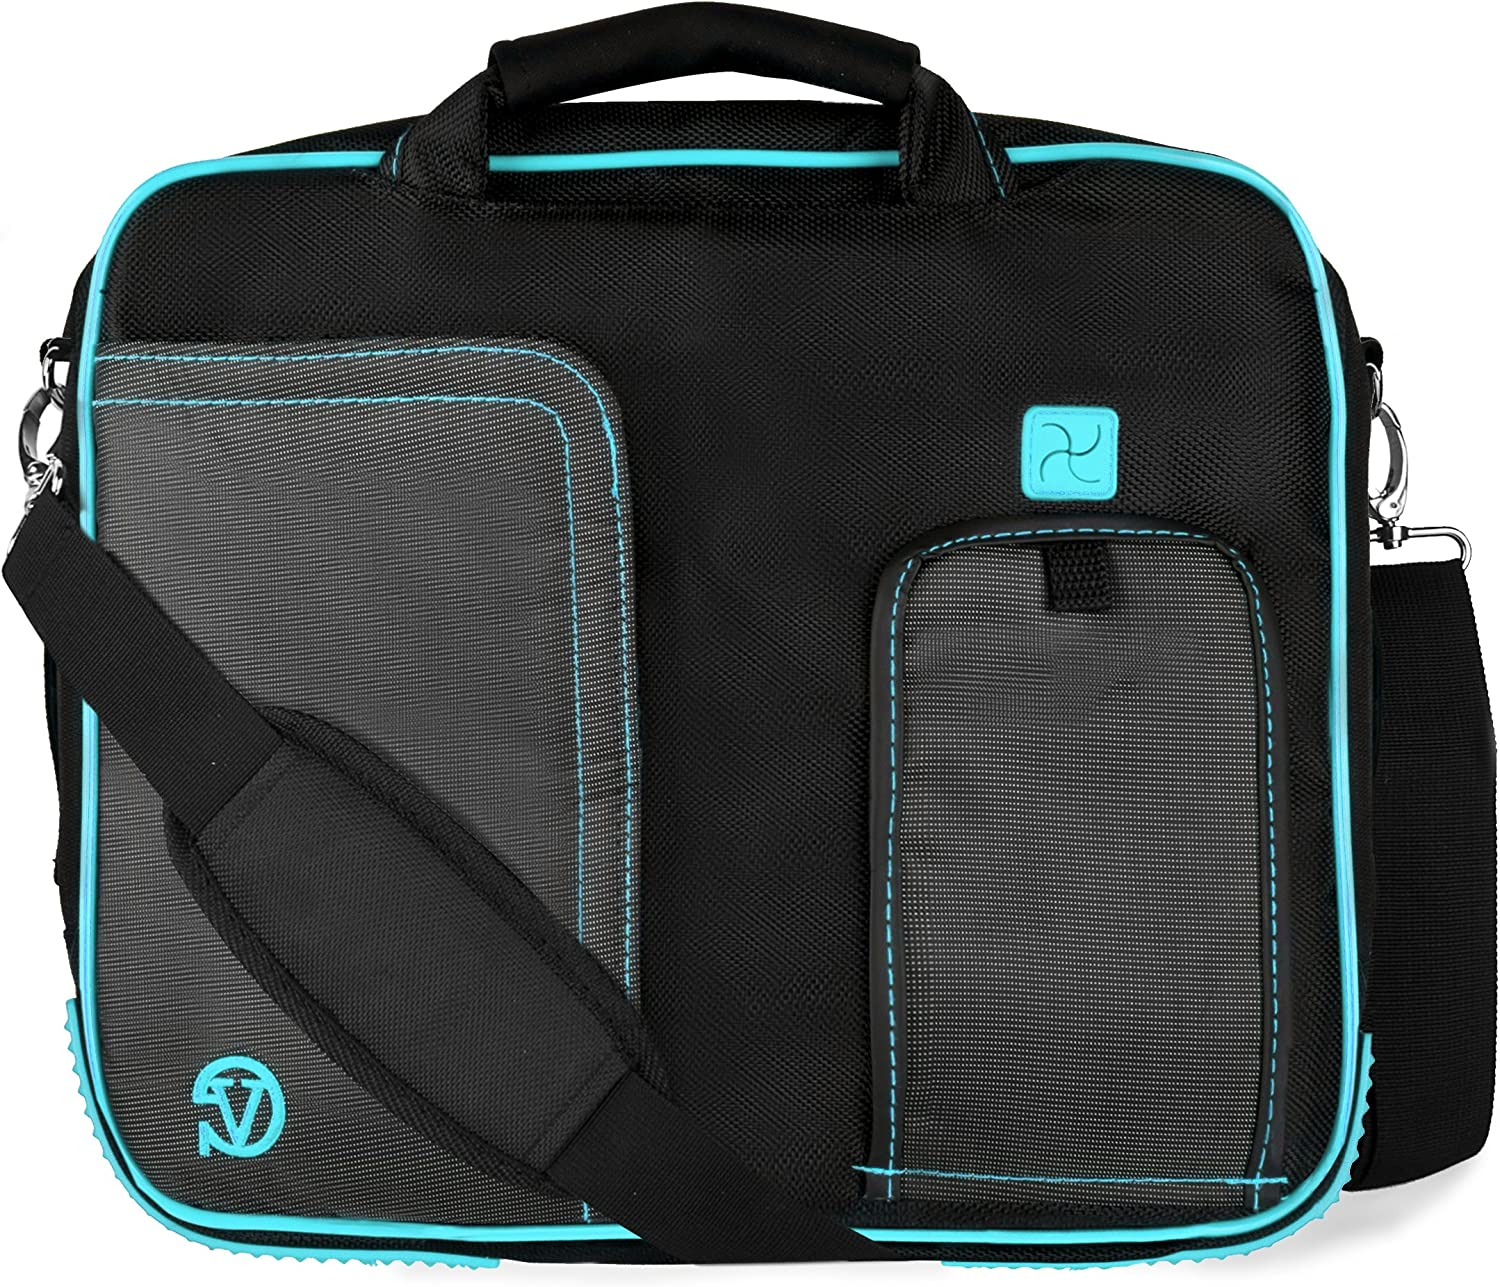 Travel Lightweight Laptop Case 17.3 Inch for Asus ROG, X, X751